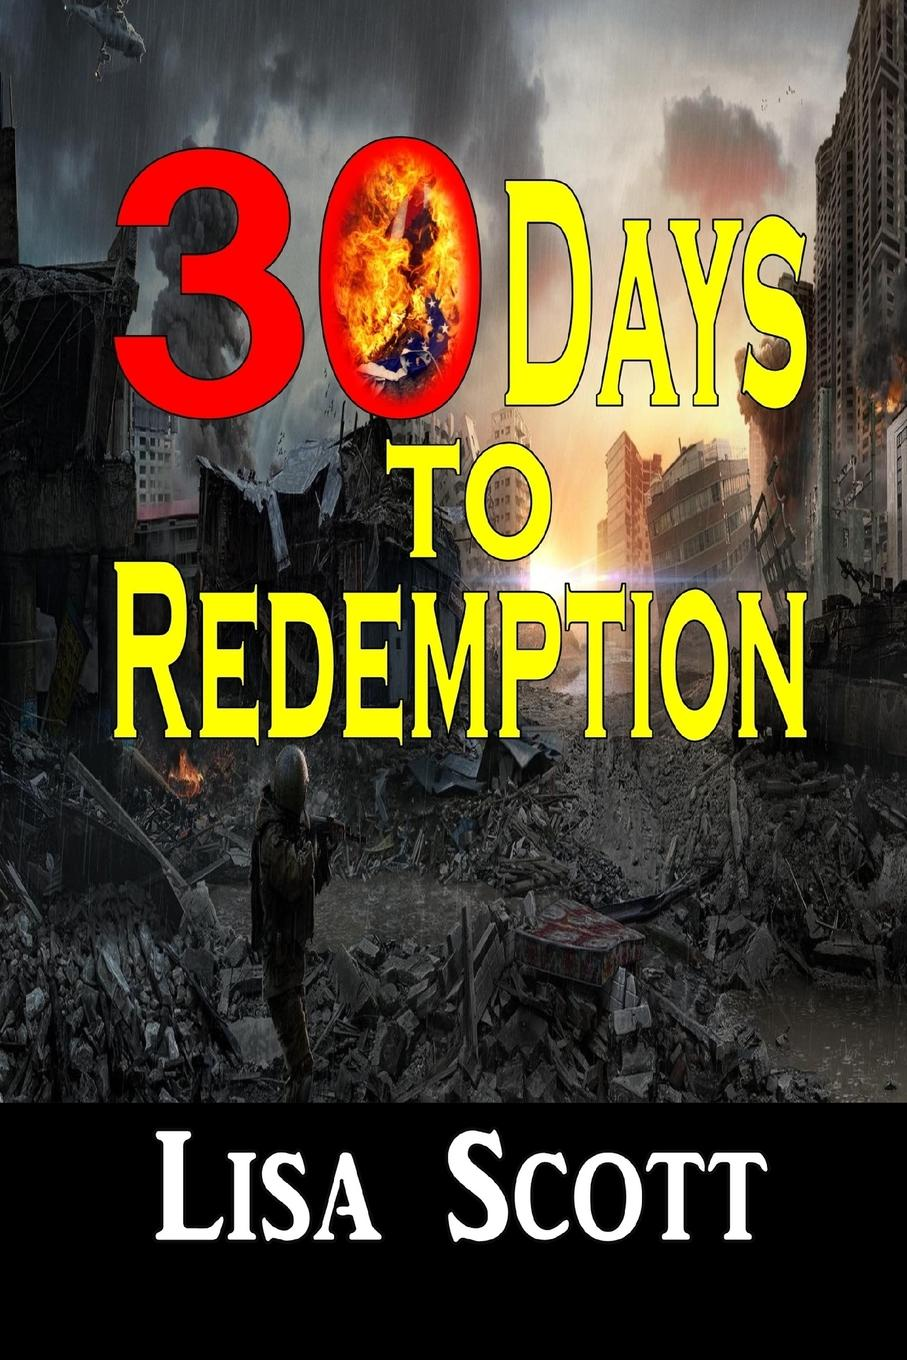 Lisa Scott 30 Days to Redemption